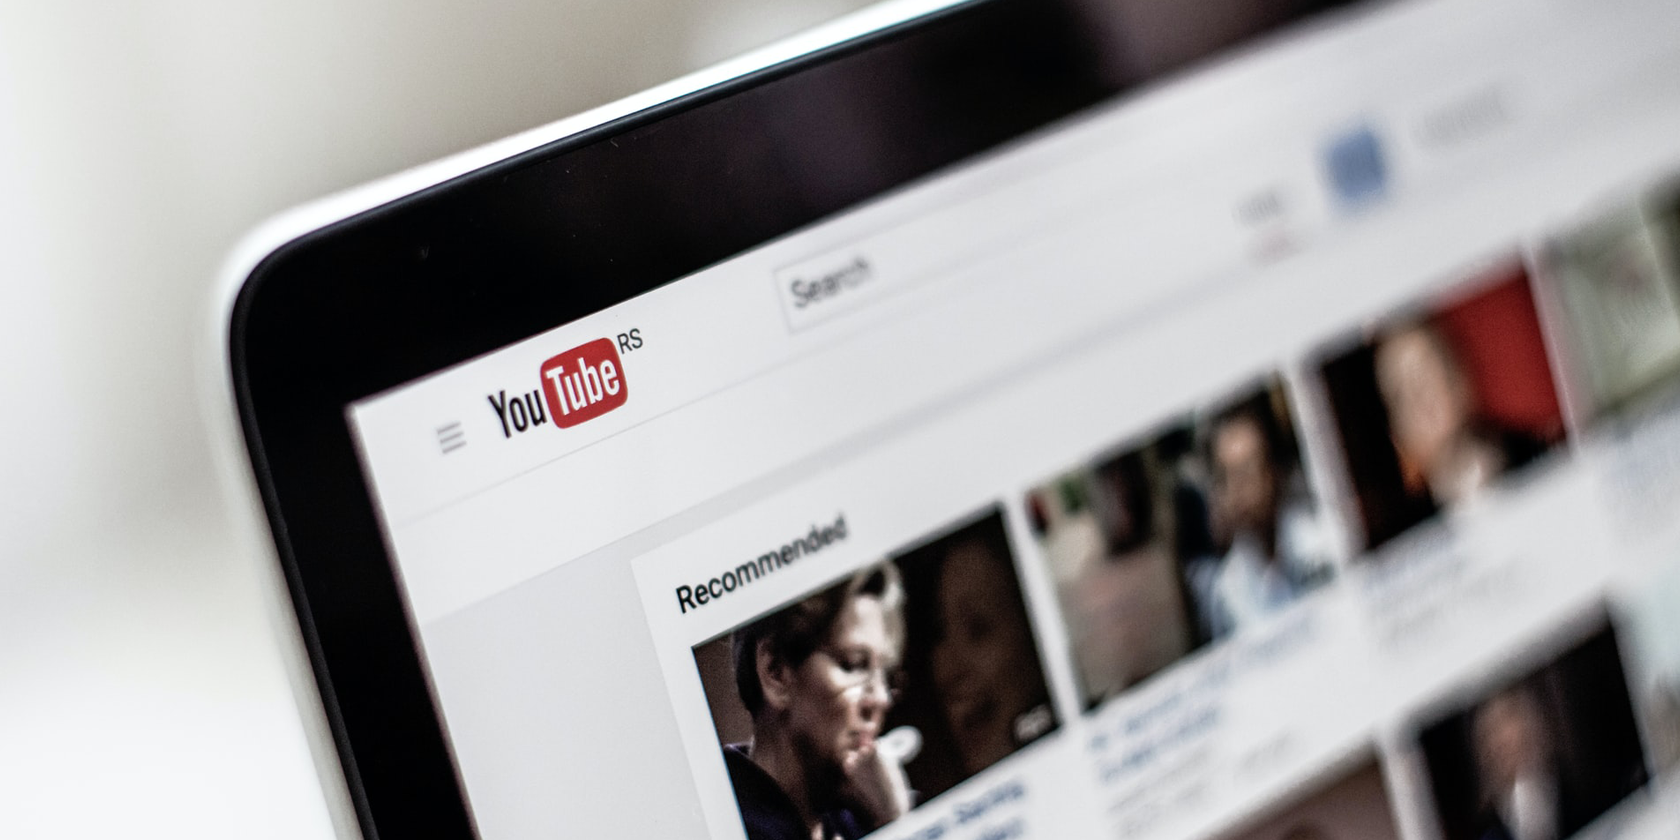 YouTube Relaxes Its Rules Demonetizing Videos Filled With Curse Words